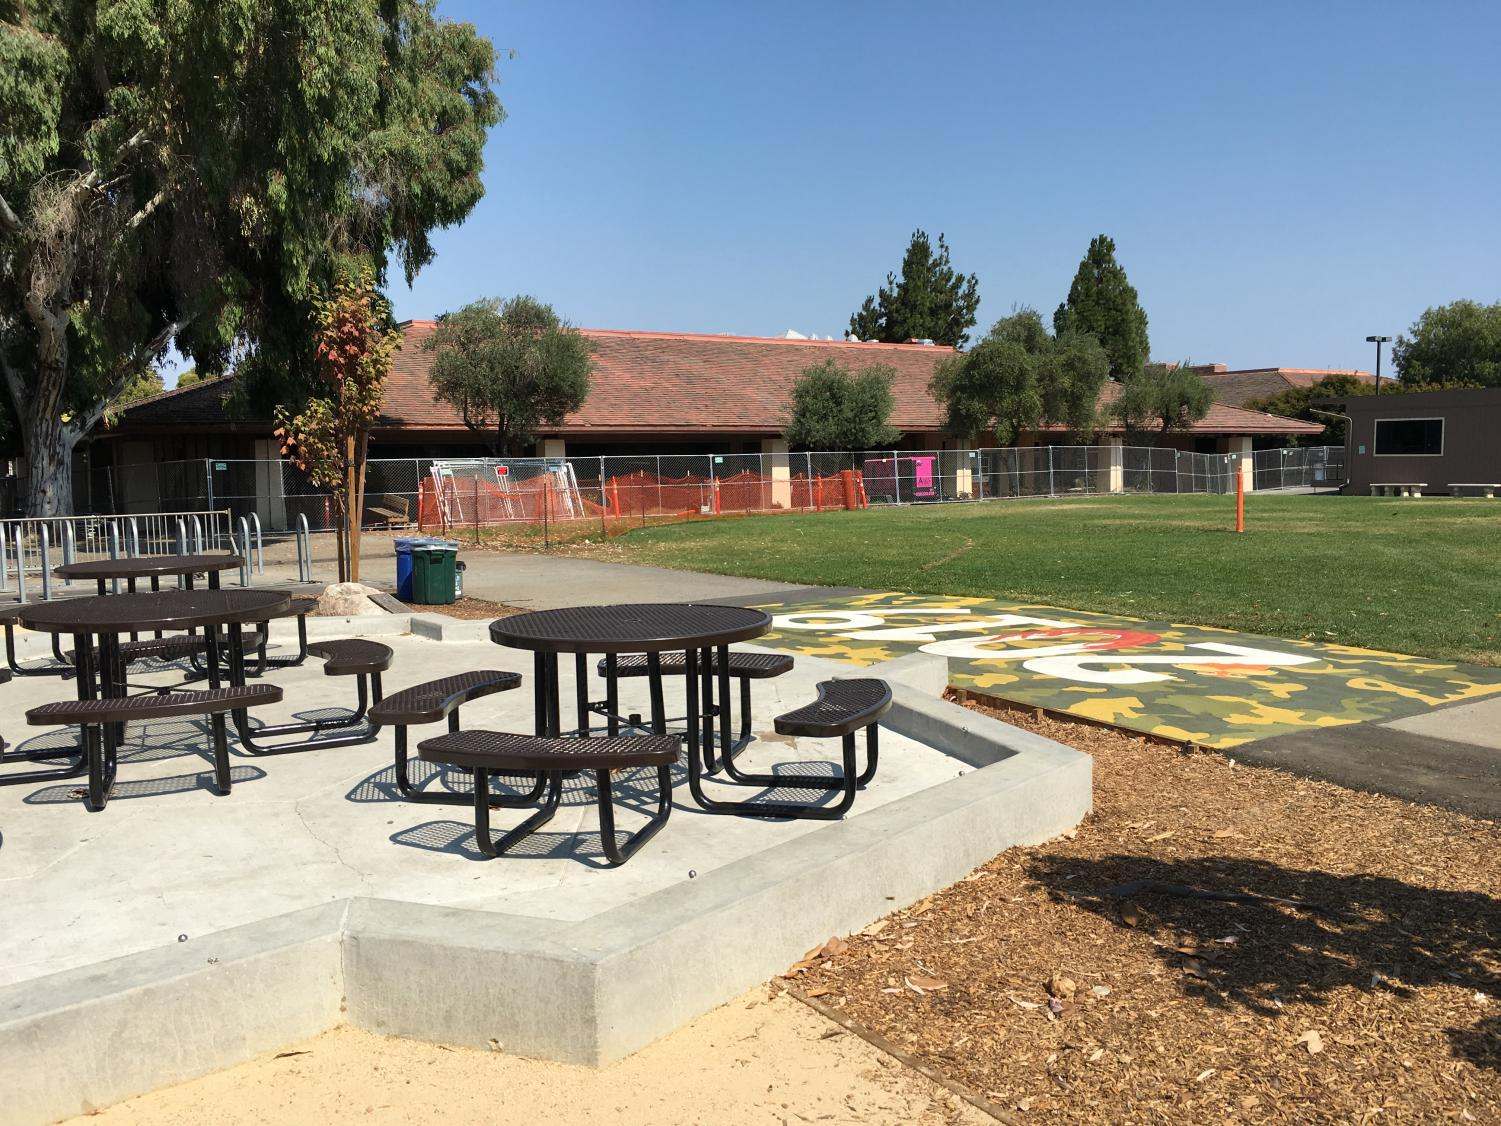 The Paly Quad is quiet prior to the start of Quadside Lands. The new Quad-themed festival will build upon previous festivals and promises attendees new activities.